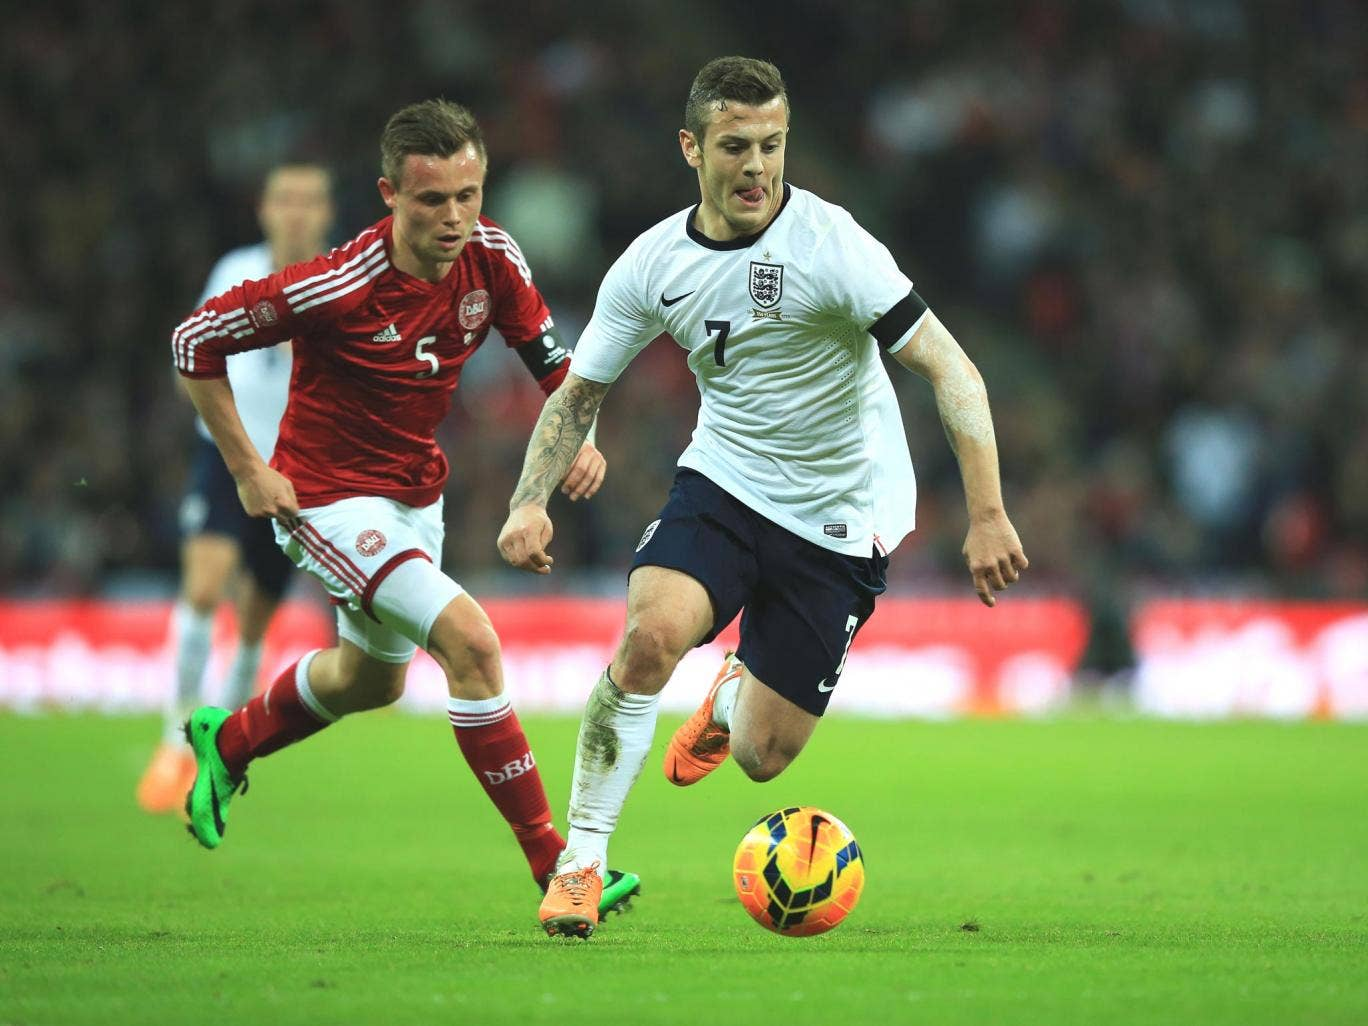 Jack Wilshere will have a maximum of five games for Arsenal in which to stake his claim for the World Cup